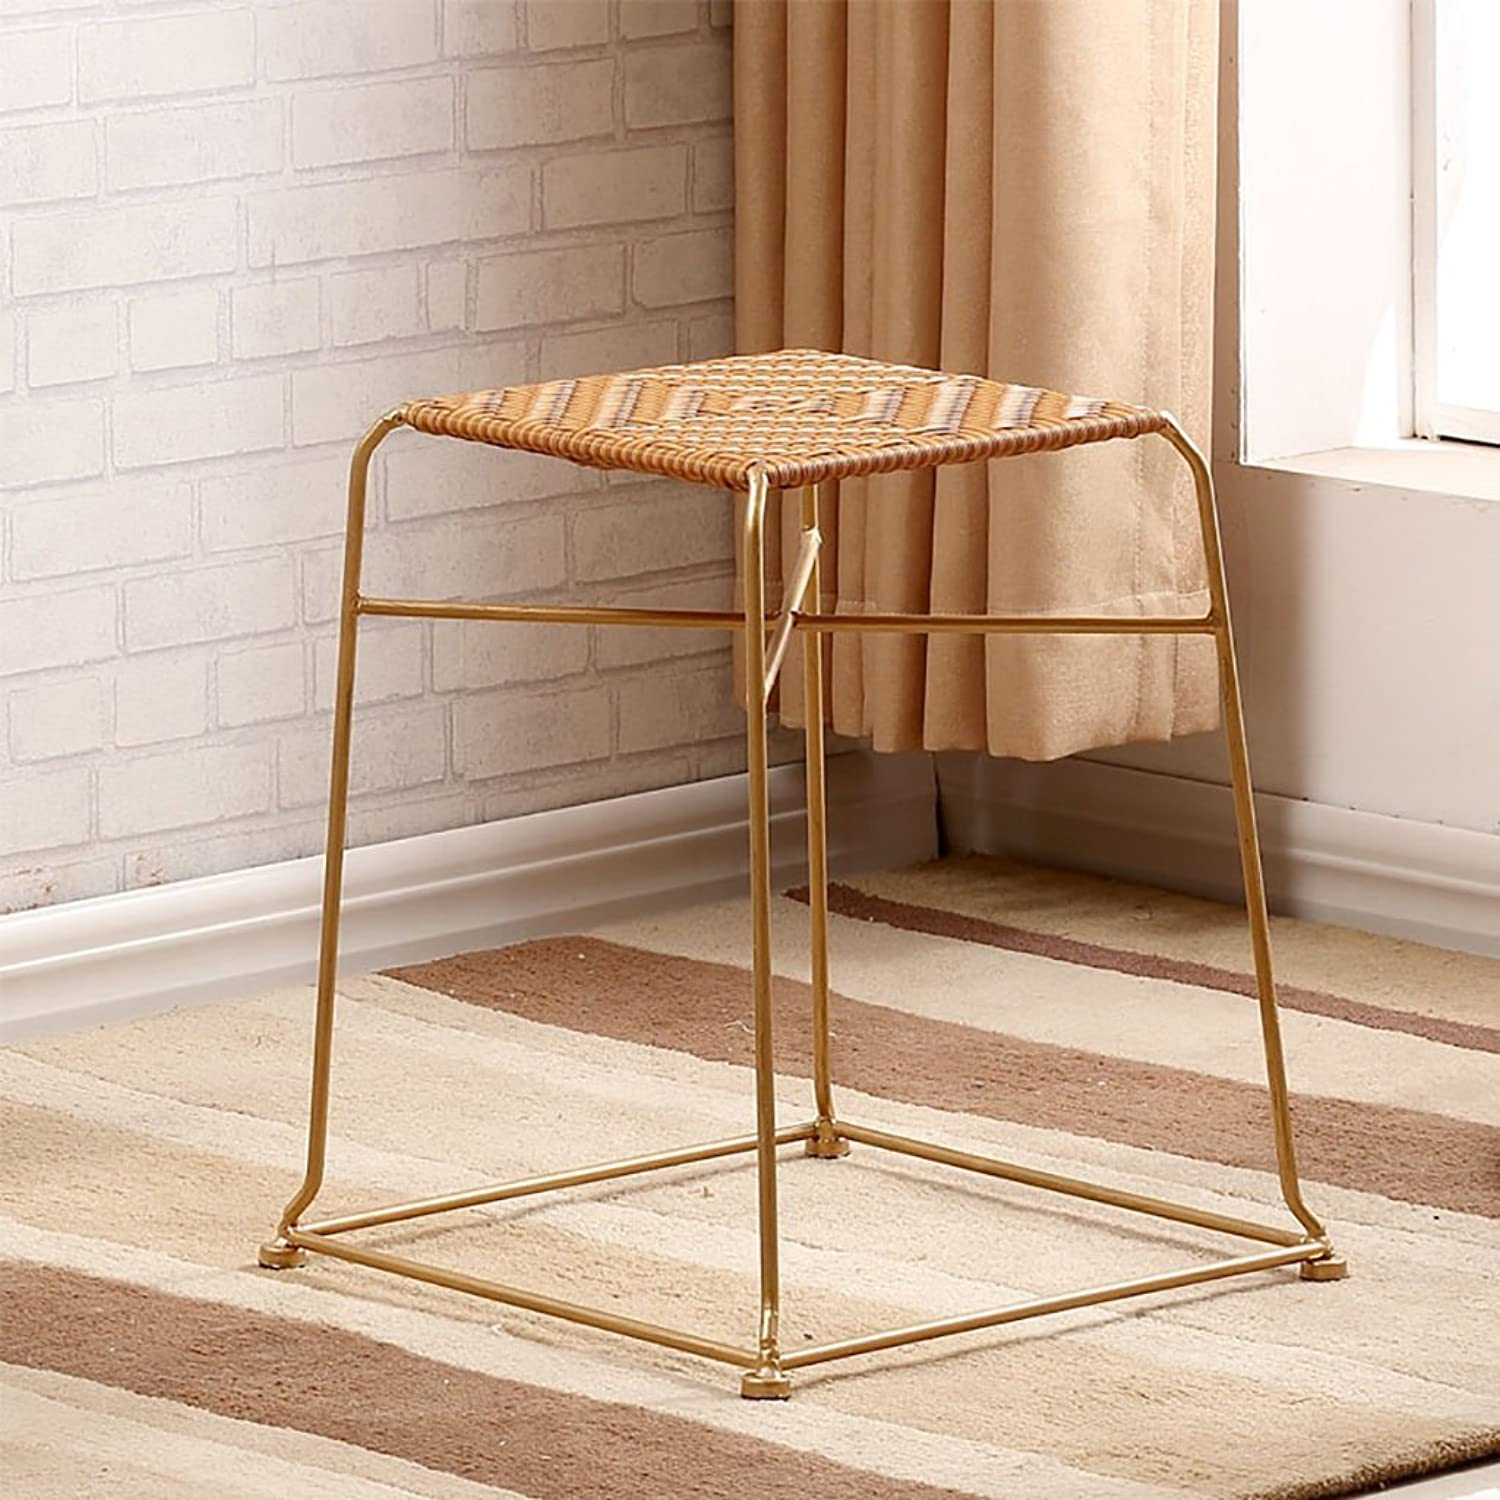 AIDELAI Bar Stool Chair- Rattan Stool Side Stool Rattan Chair Dining Chair Adult Bench Coffee Table Stool Stool Stool Plastic Stool Saddle Seat (color   B)